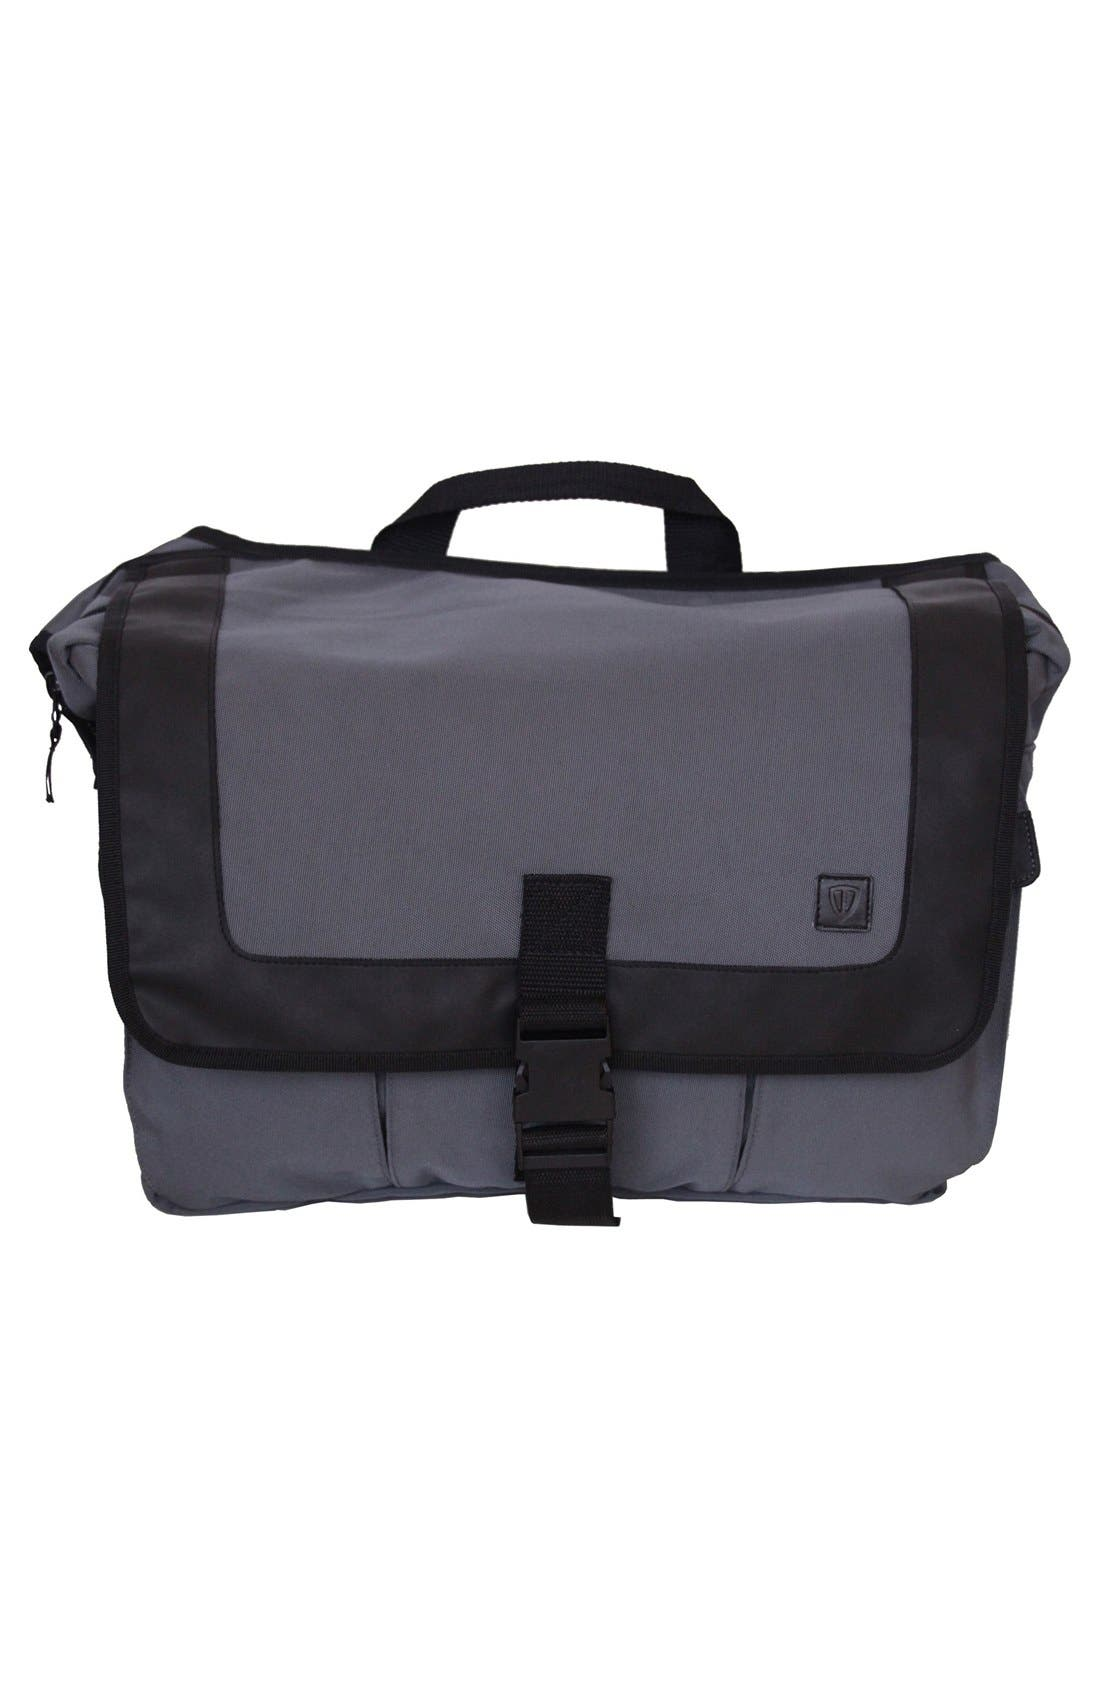 DIAPER DUDE Messenger III Diaper Bag